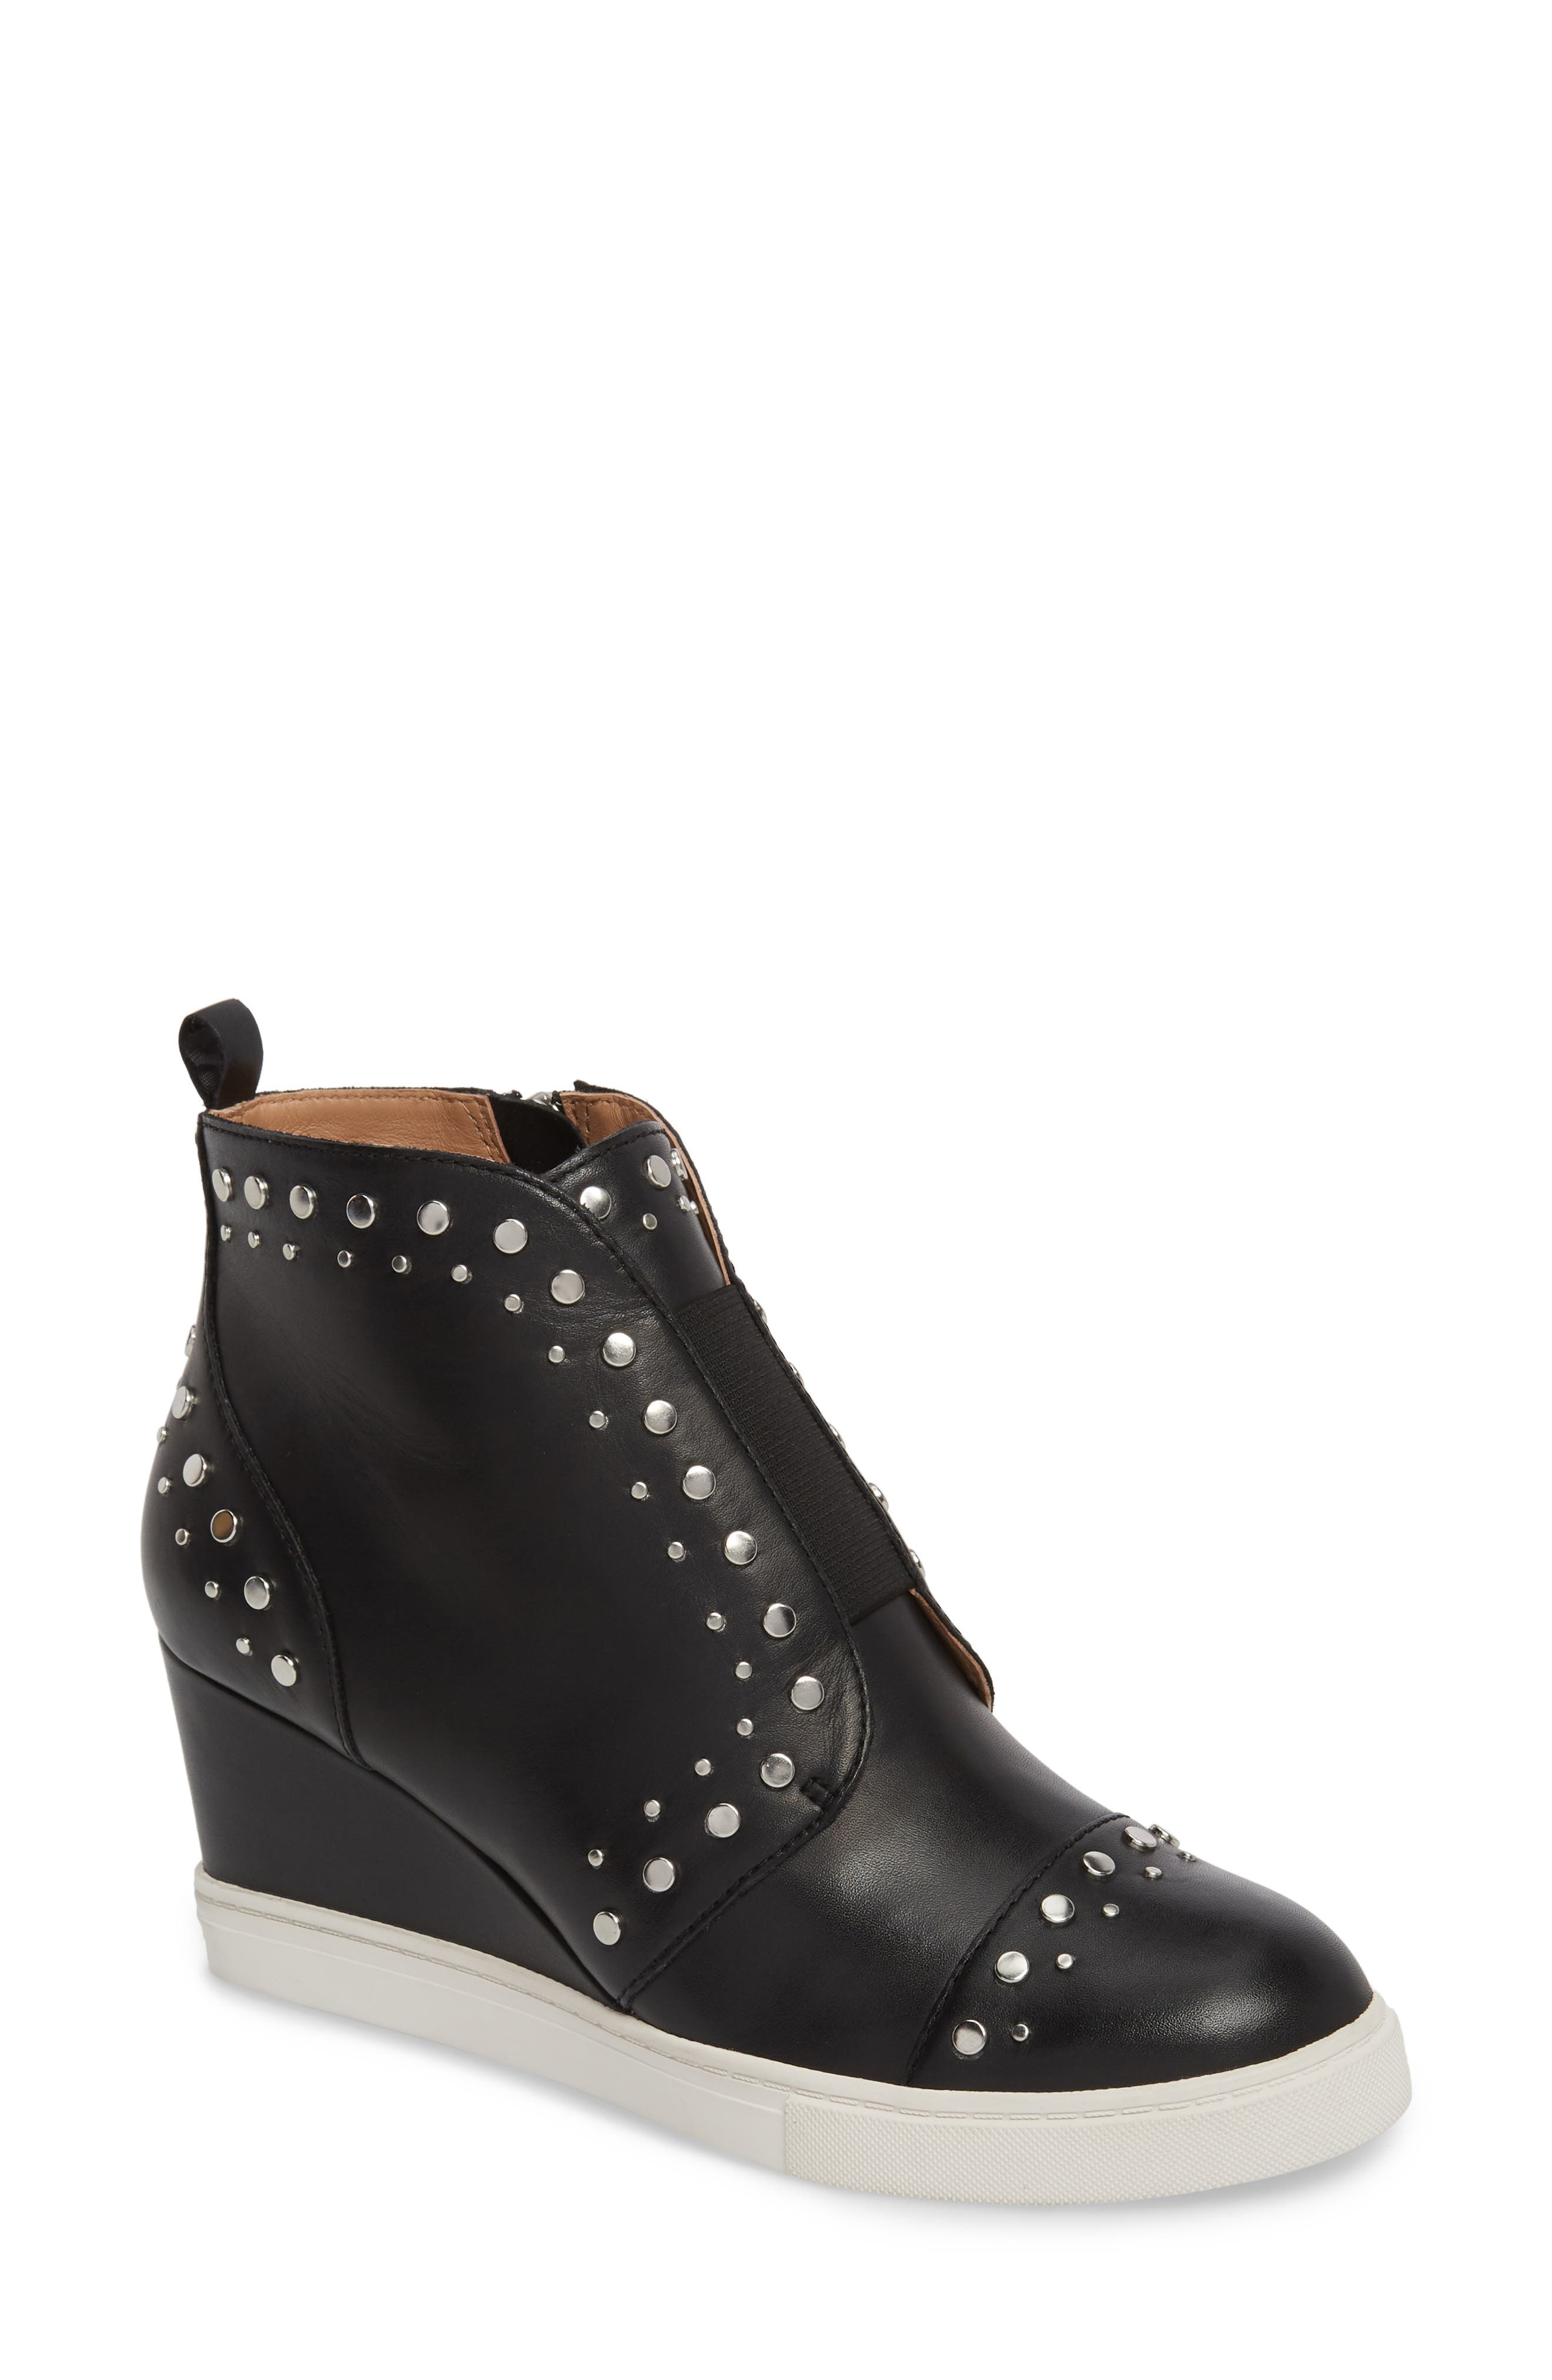 LINEA PAOLO Felicity Wedge Sneaker, Main, color, BLACK LEATHER